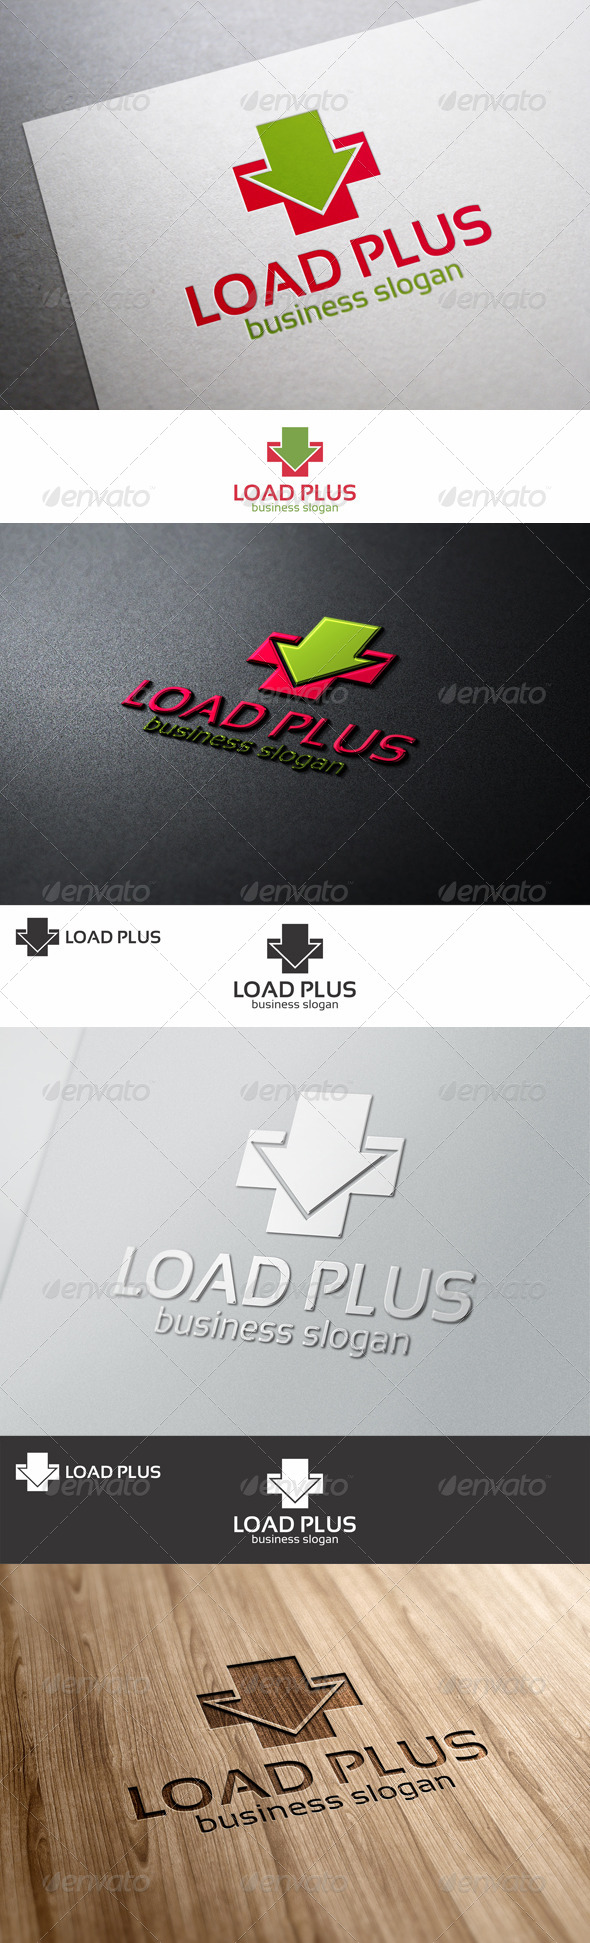 GraphicRiver Load Plus Logo Template 8635250